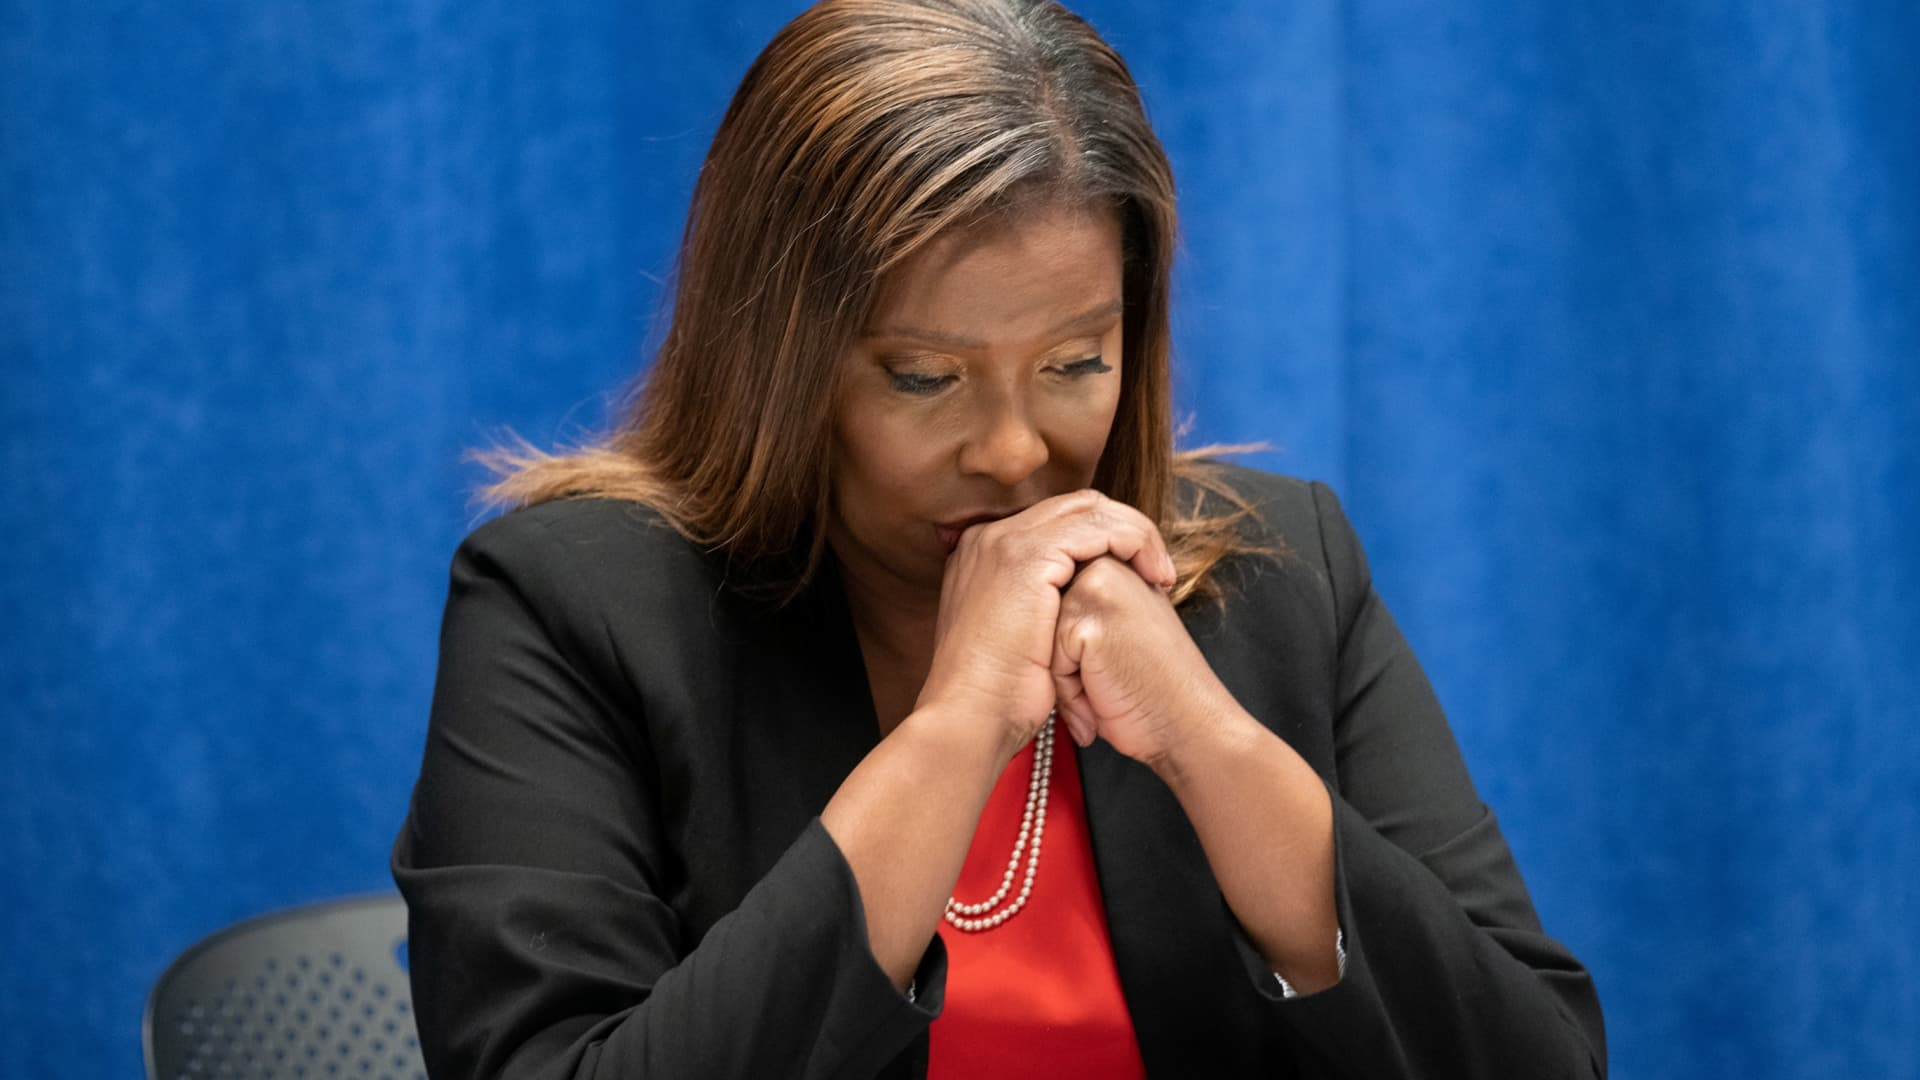 New York State Attorney General, Letitia James, listens to independent investigators Joon H. Kim and Anne L. Clark (not pictured) during a news conference regarding a probe that found New York Governor Andrew Cuomo sexually harassed multiple women, in New York, August 3, 2021.